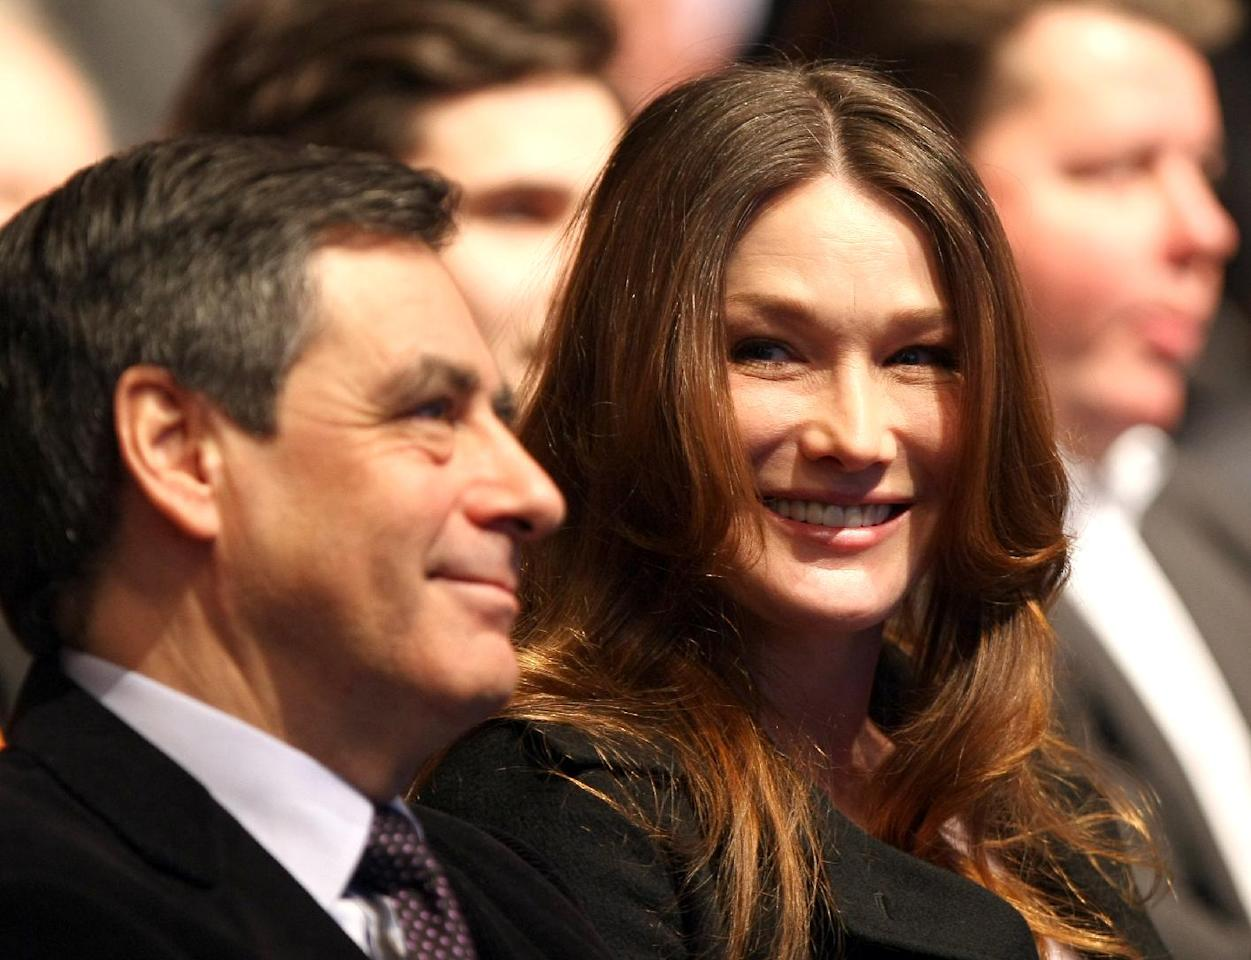 Wife of France's President and Candidate for the Presidential Election 2012, Nicolas Sarkozy, Carla Bruni Sarkozy, right, speaks with First Minister Francois Fillon, at a meeting in Marseille, southern France, Sunday, Feb. 19, 2012. Sarkozy has thrown himself into what may be the toughest fight of his political career: unpopular for years and running a feeble economy, the divisive French president announced he's running for a second term. (AP Photo/Claude Paris)